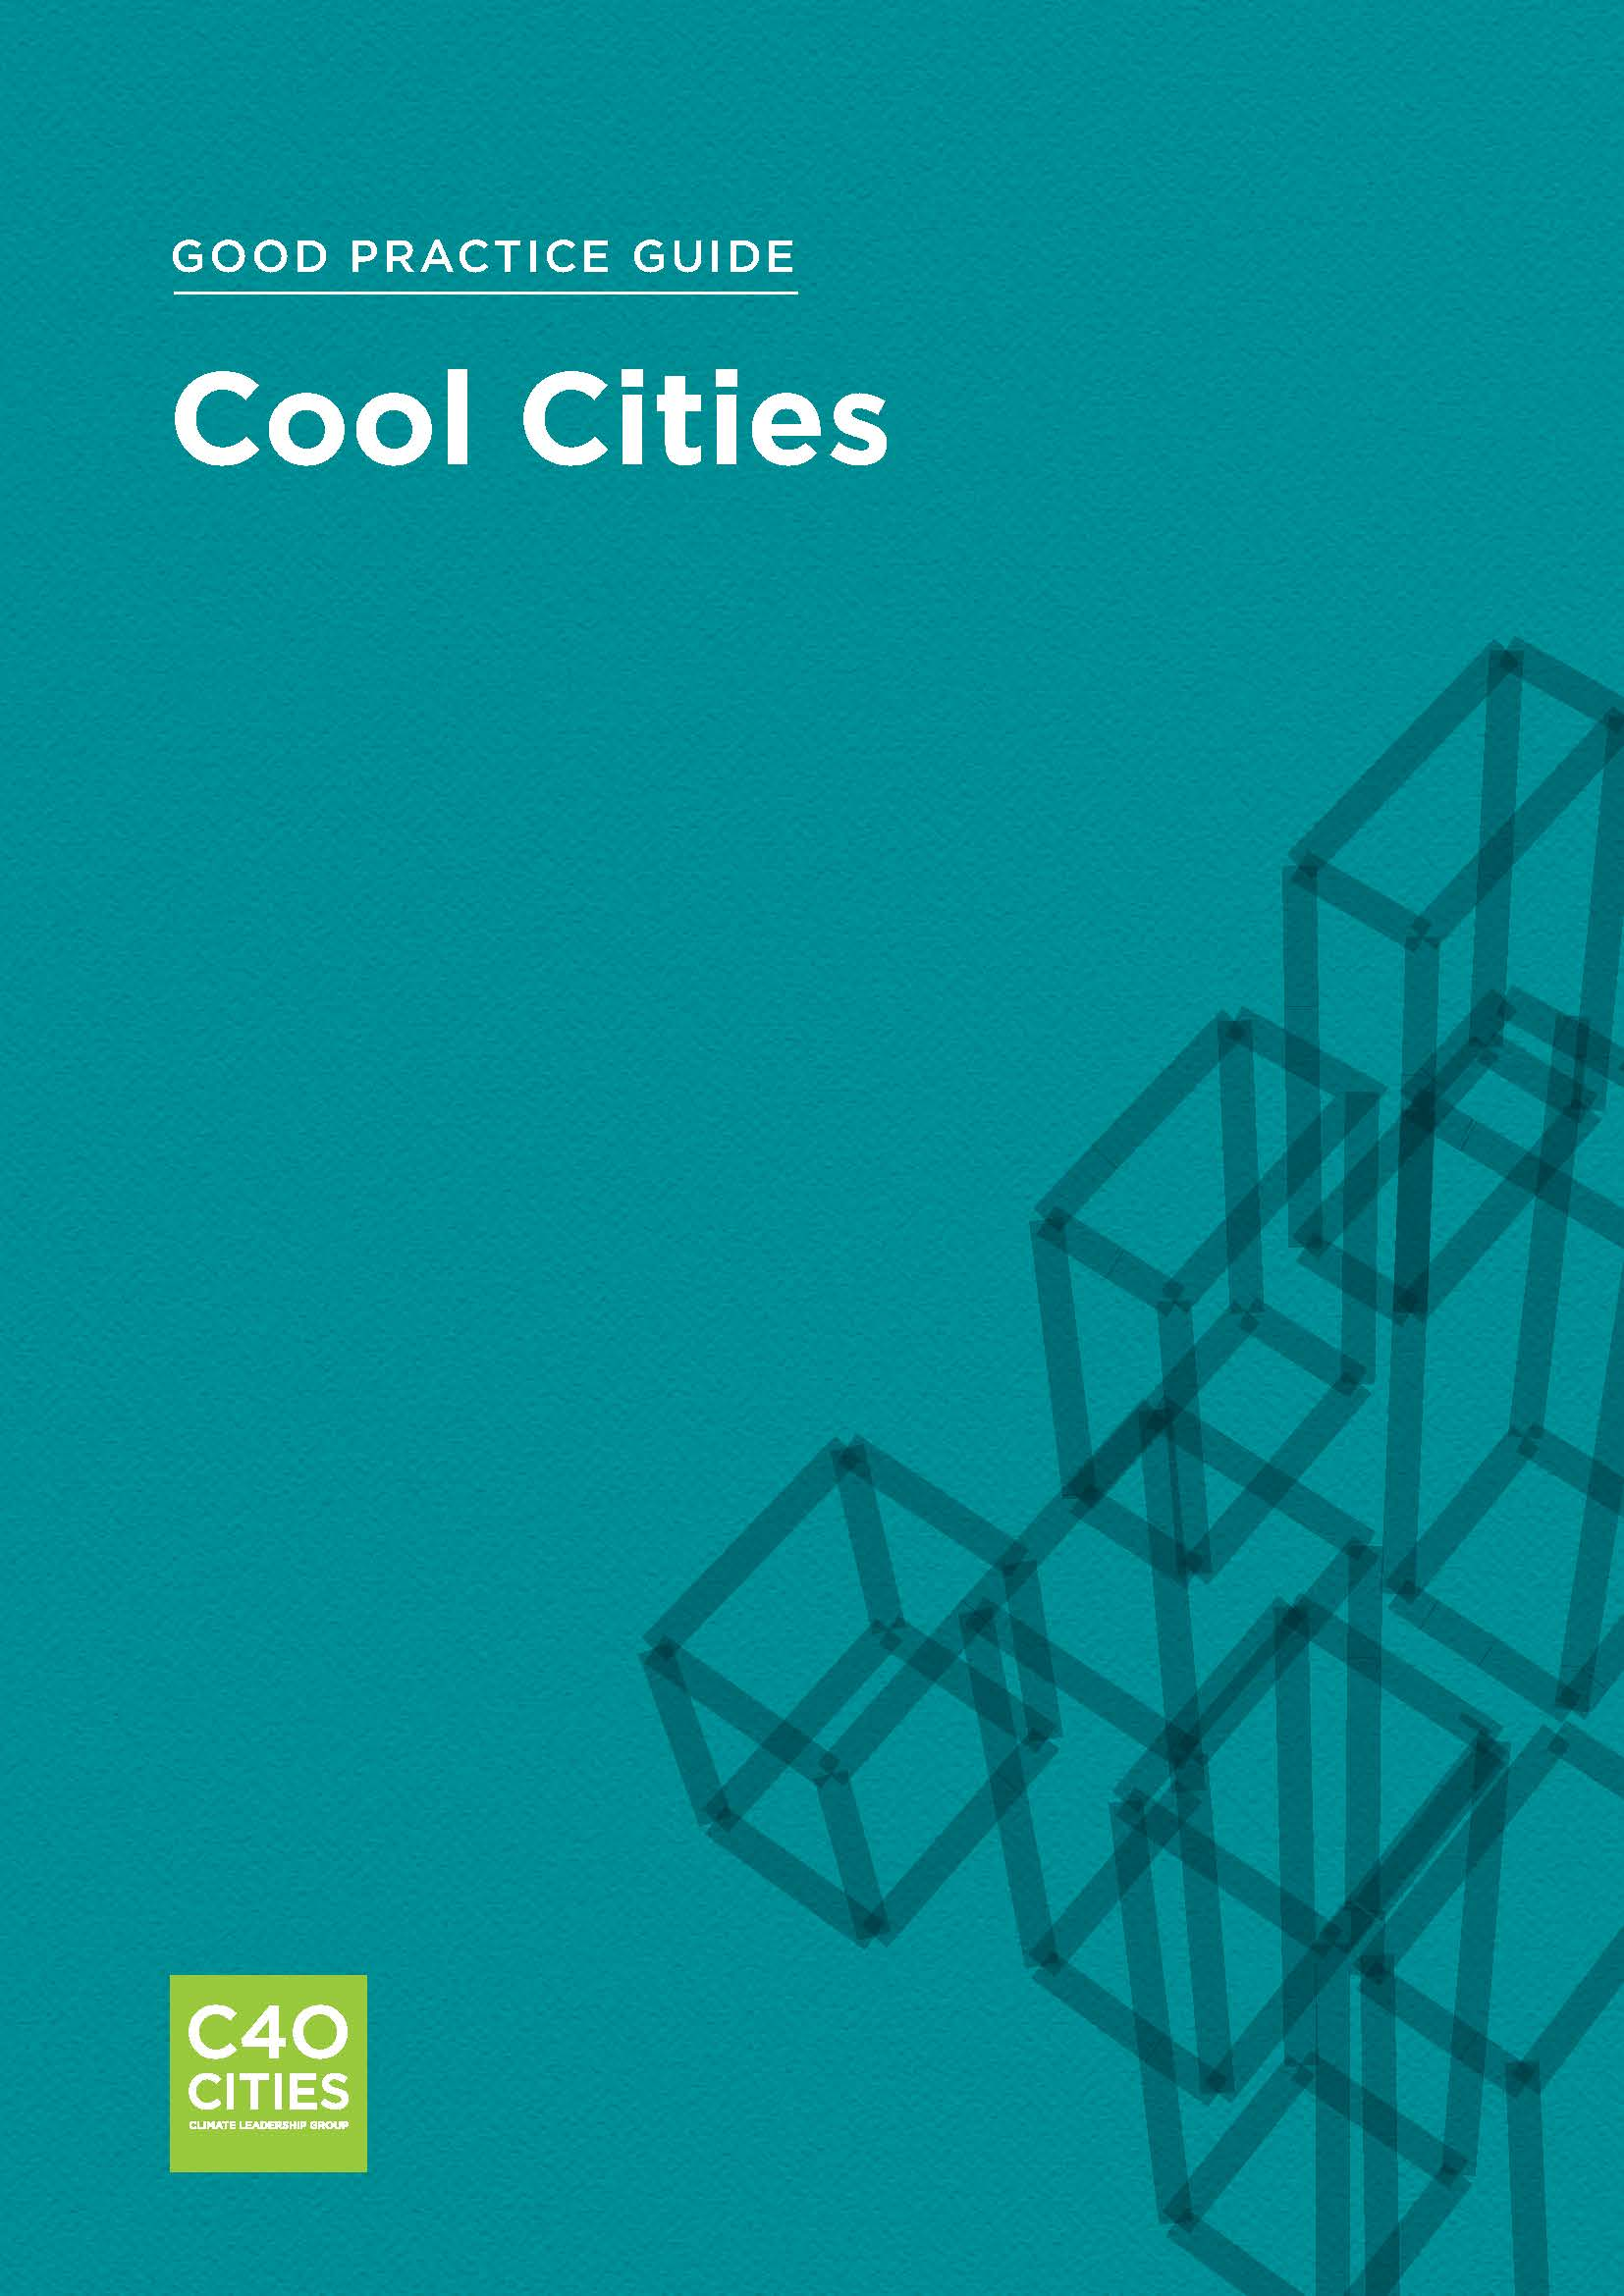 Good Practice Guide: Cool Cities